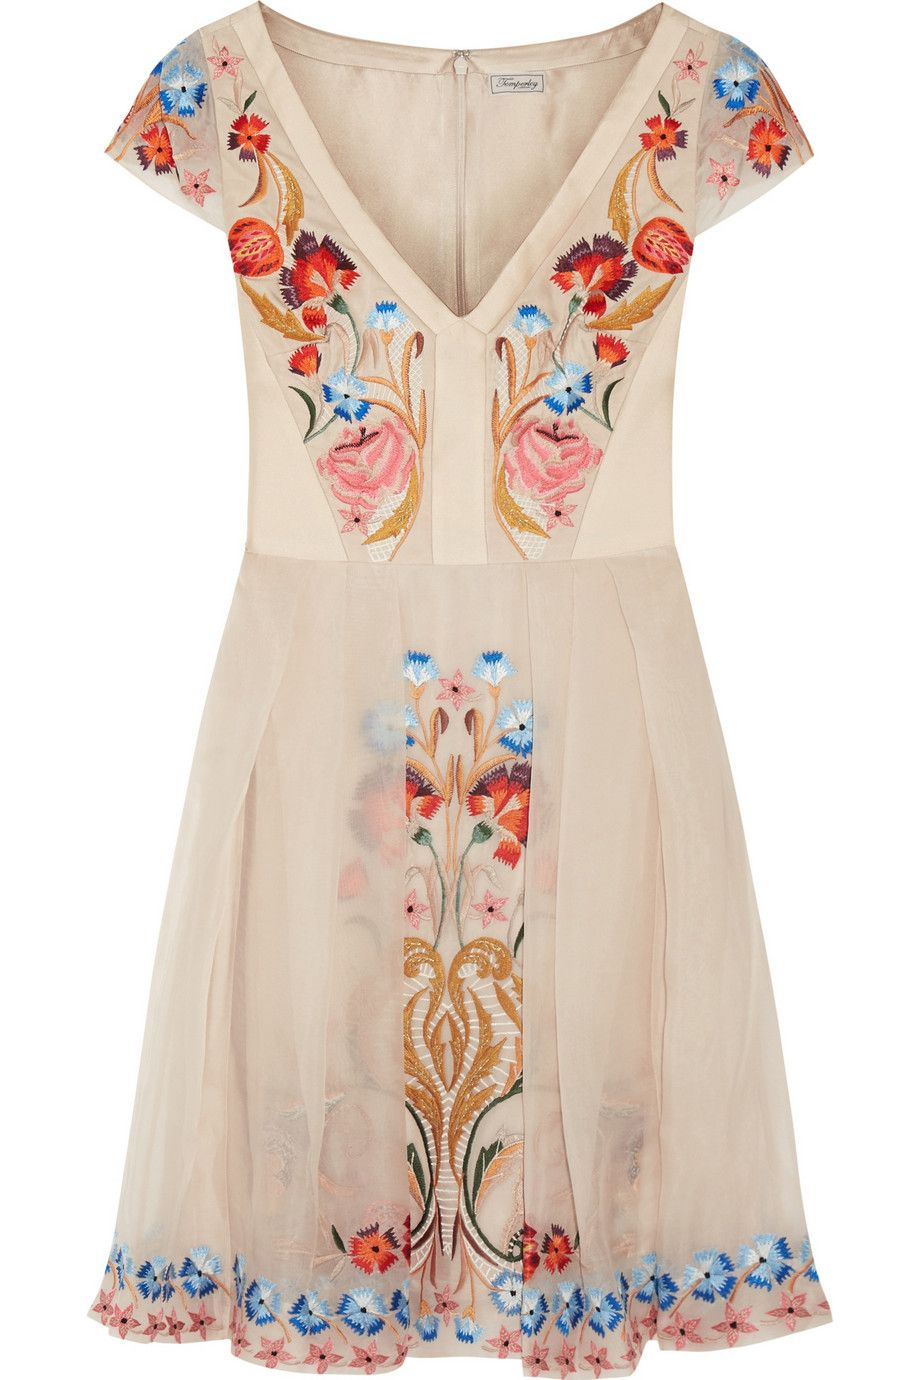 Layered Crepe Dress Embroidered Silkembroidered